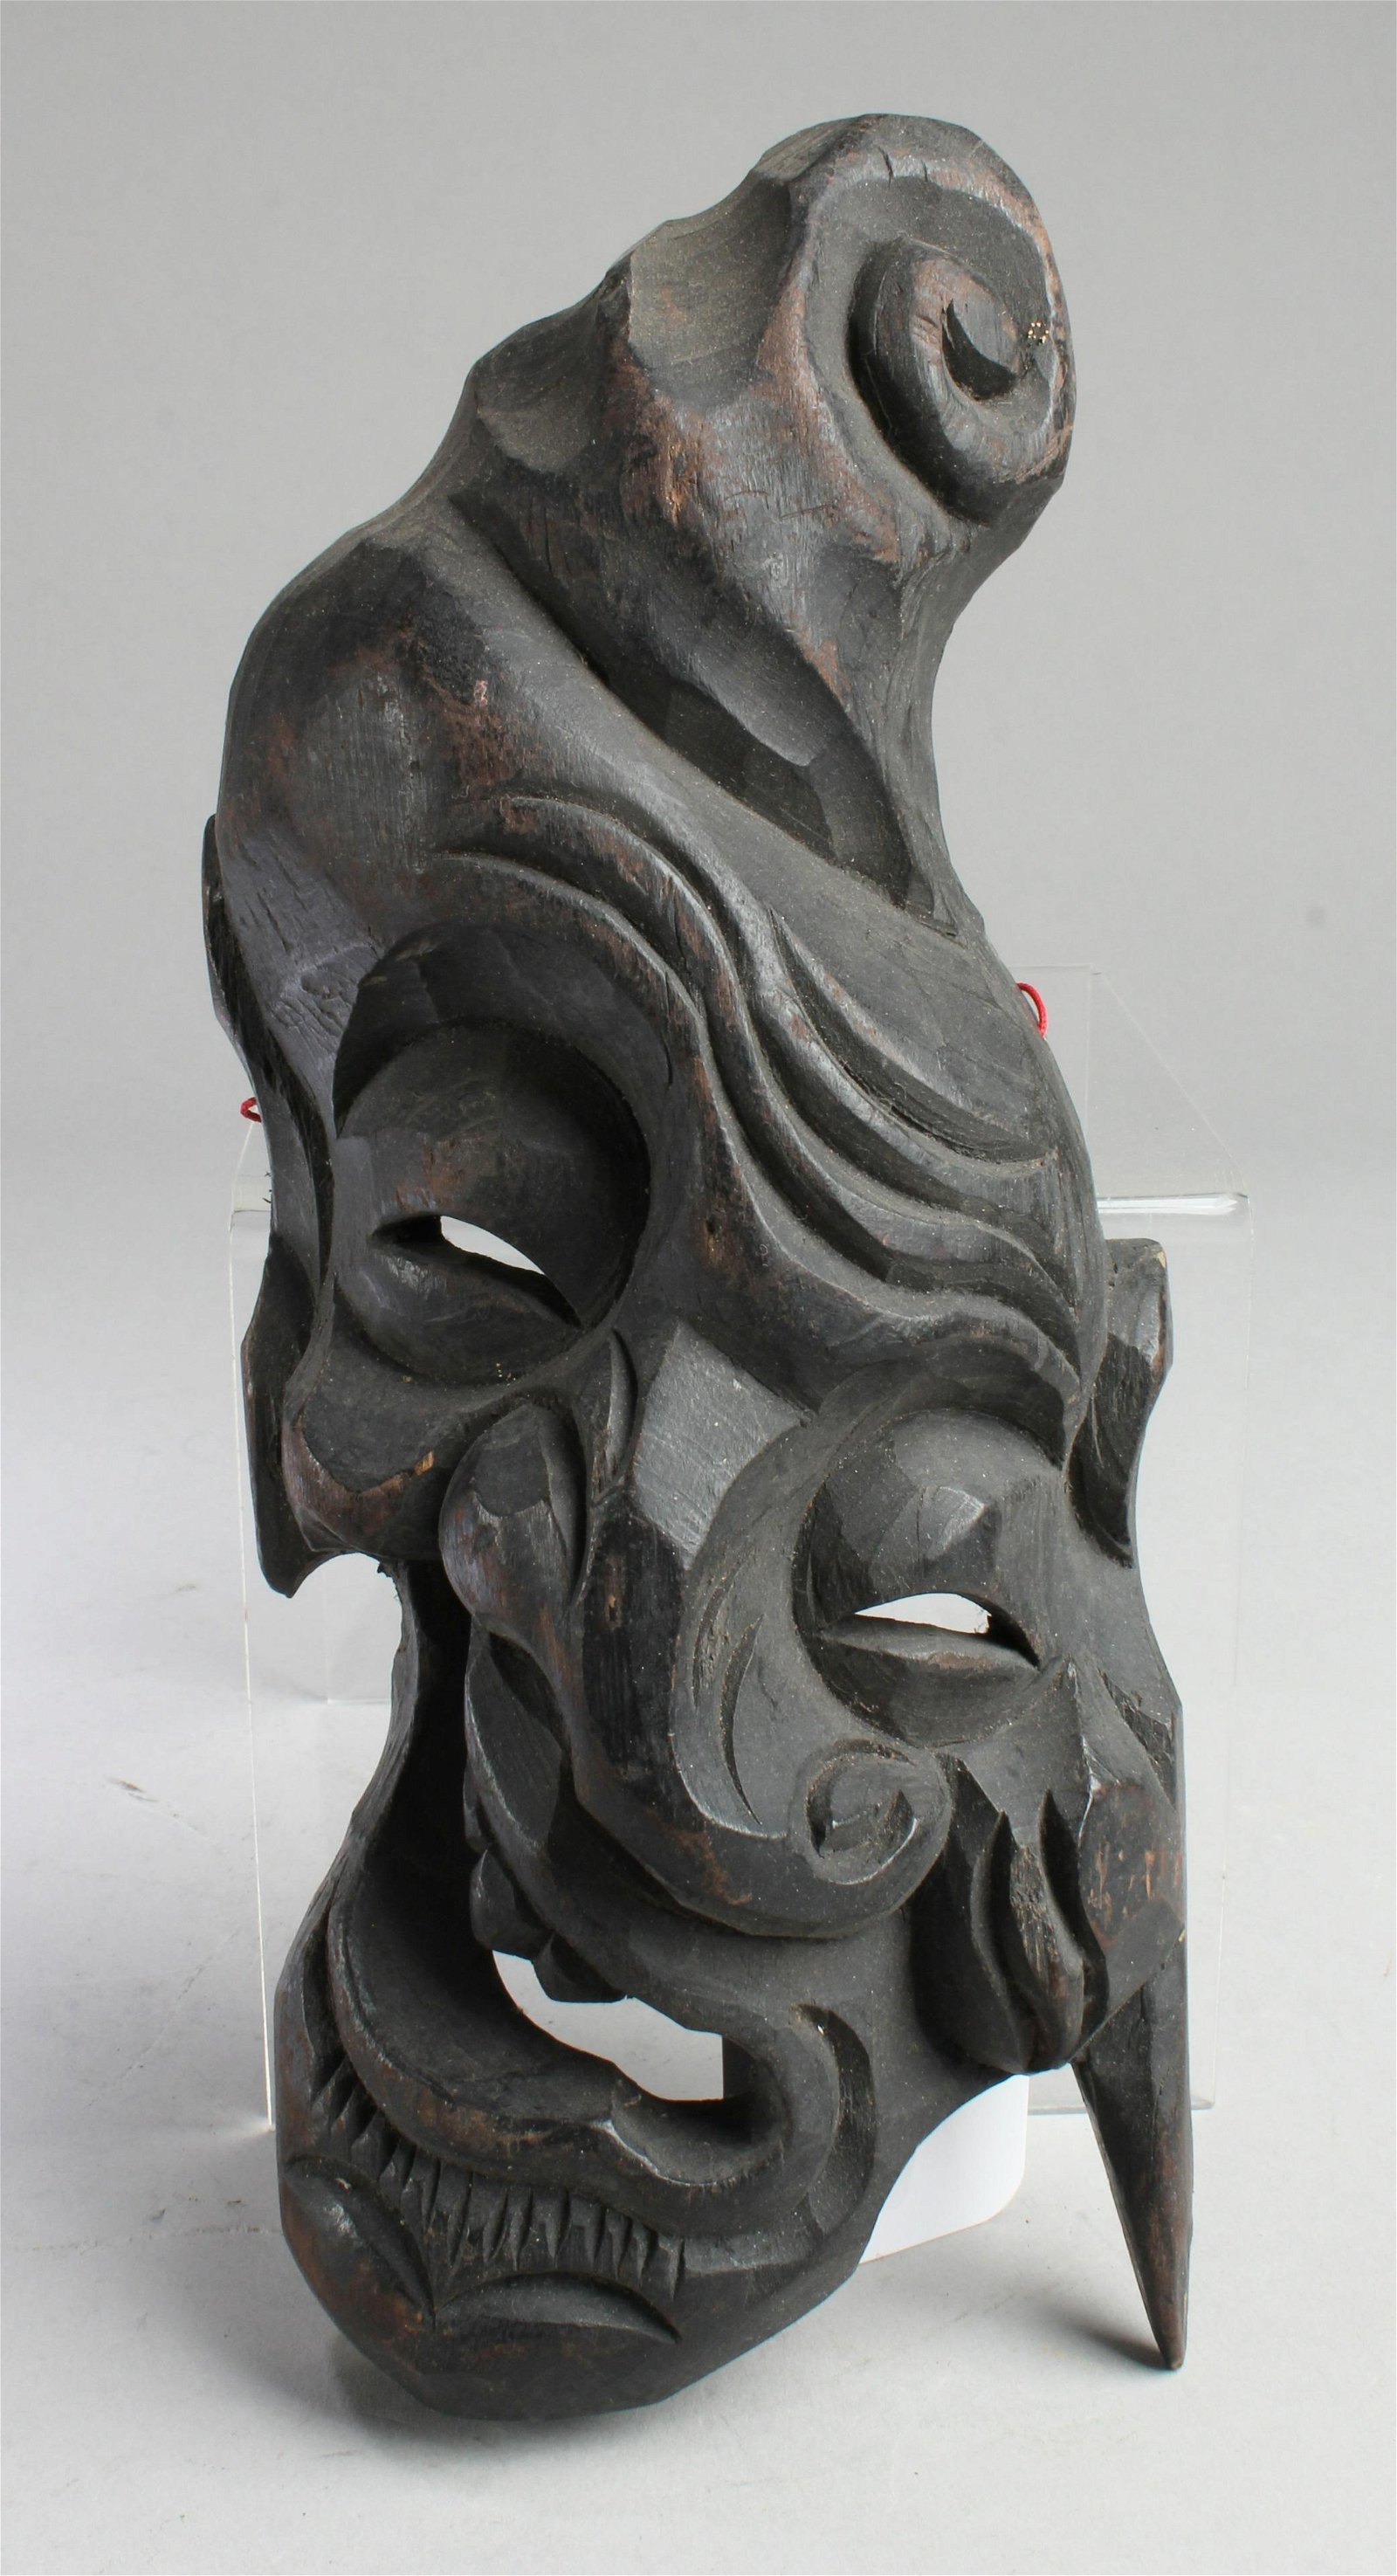 A Carved Wooden Face Ornament